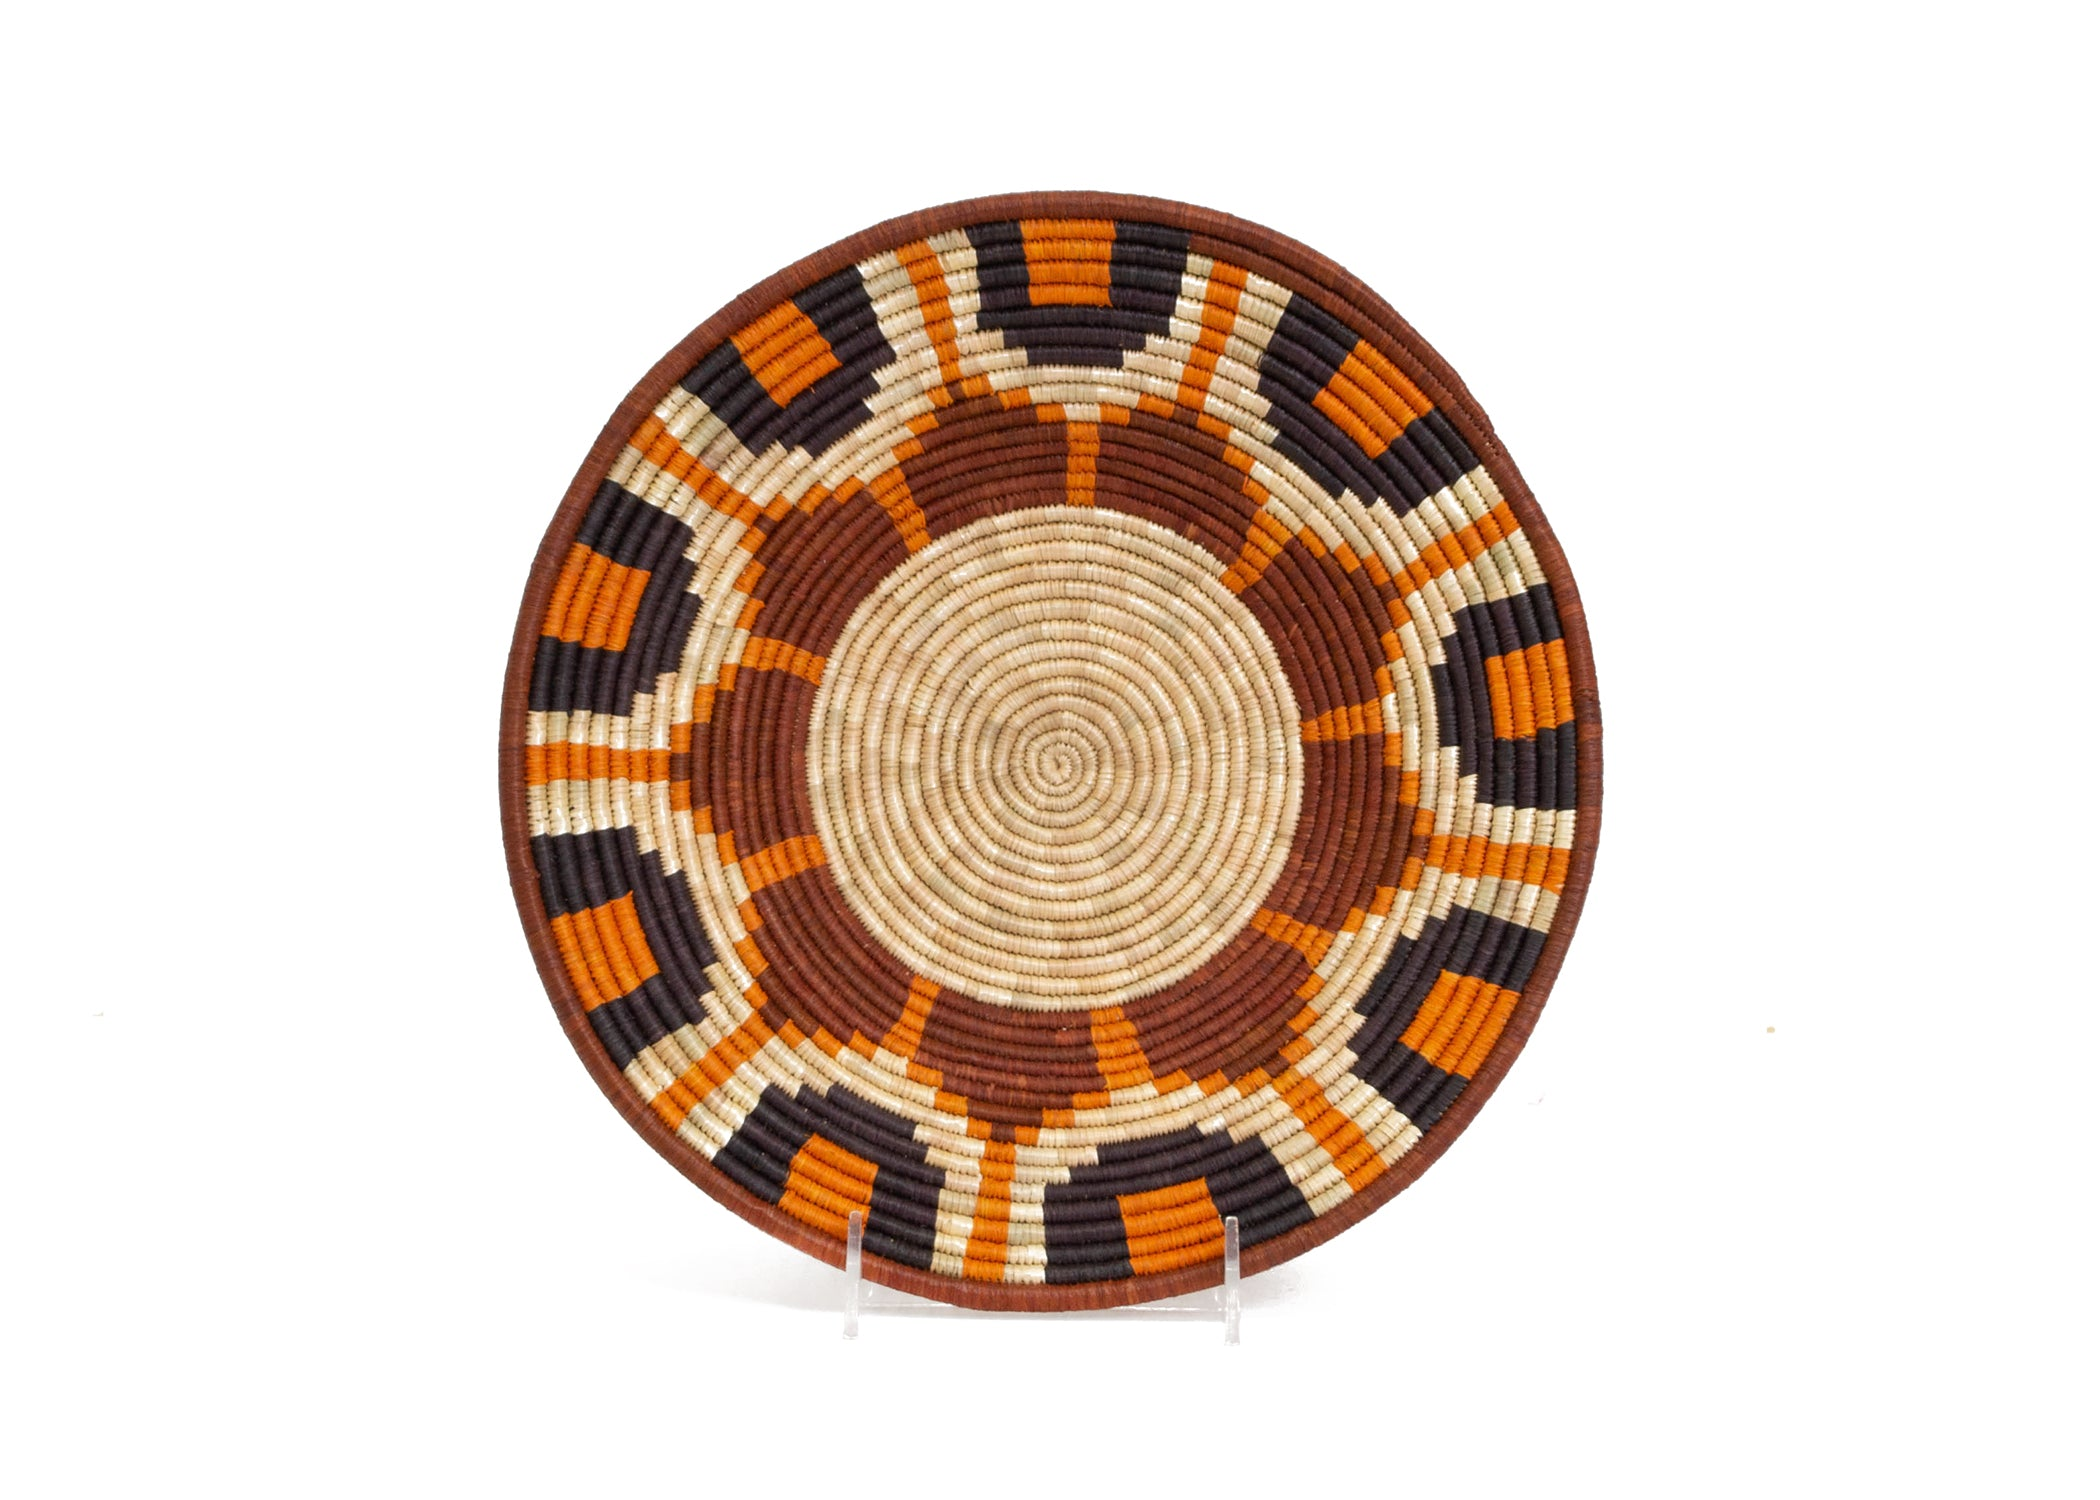 Rwenzori Basket VII - KAZI - Artisan made high quality home decor and wall art